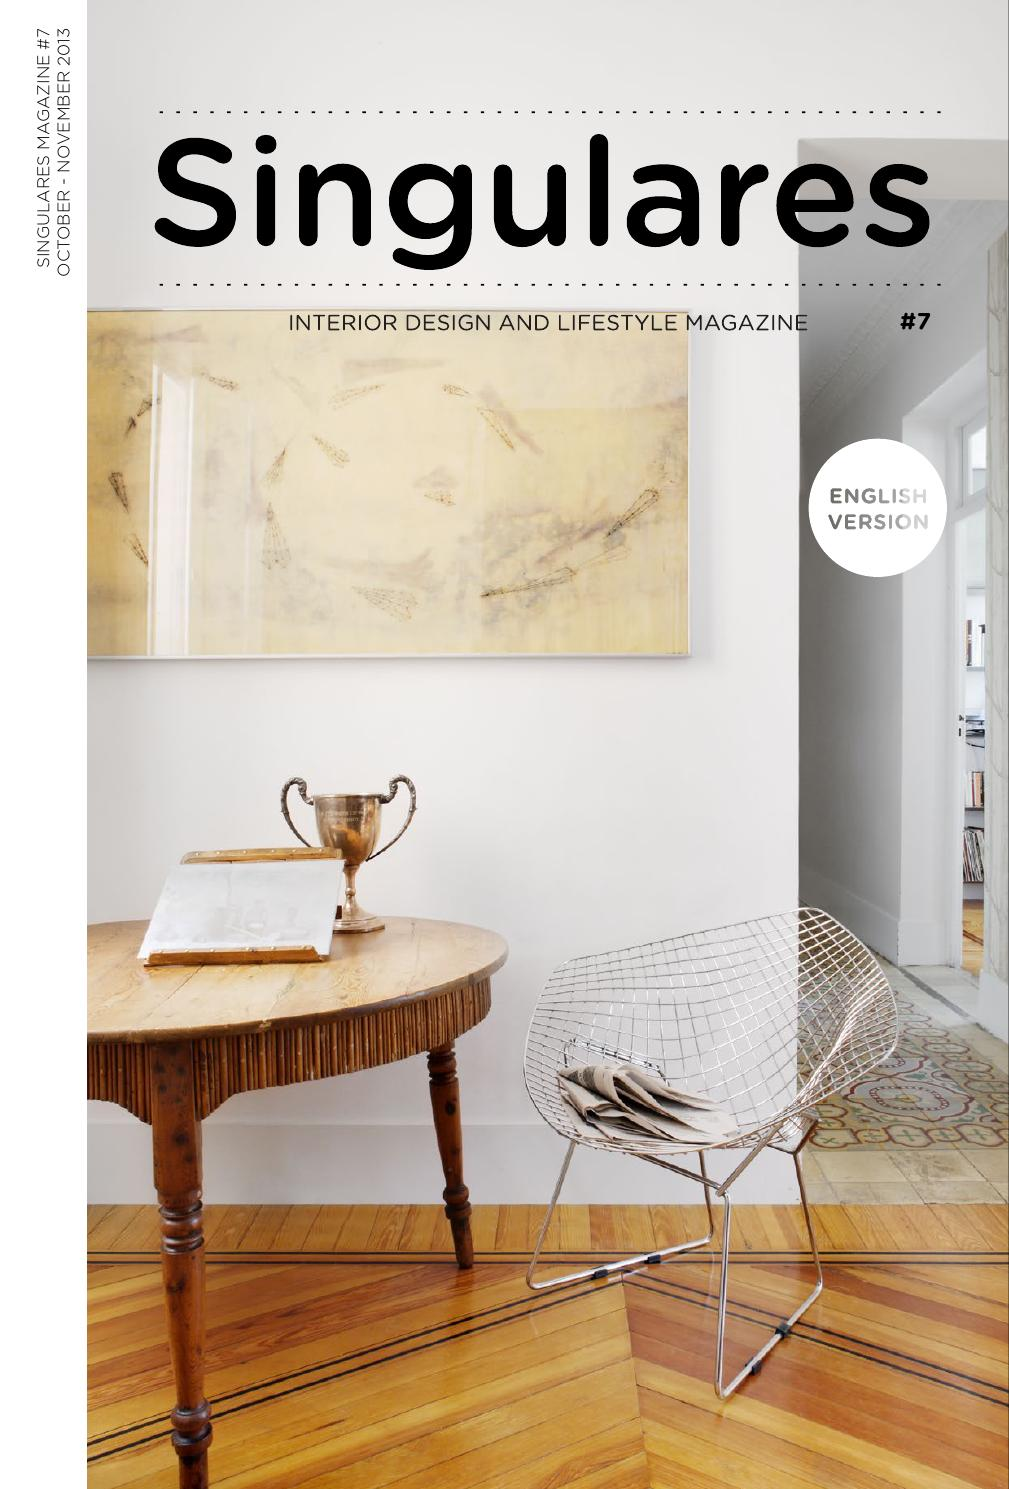 Maison Decor Valladolid Singulares Magazine 7 English Version By Singulares Magazine Issuu